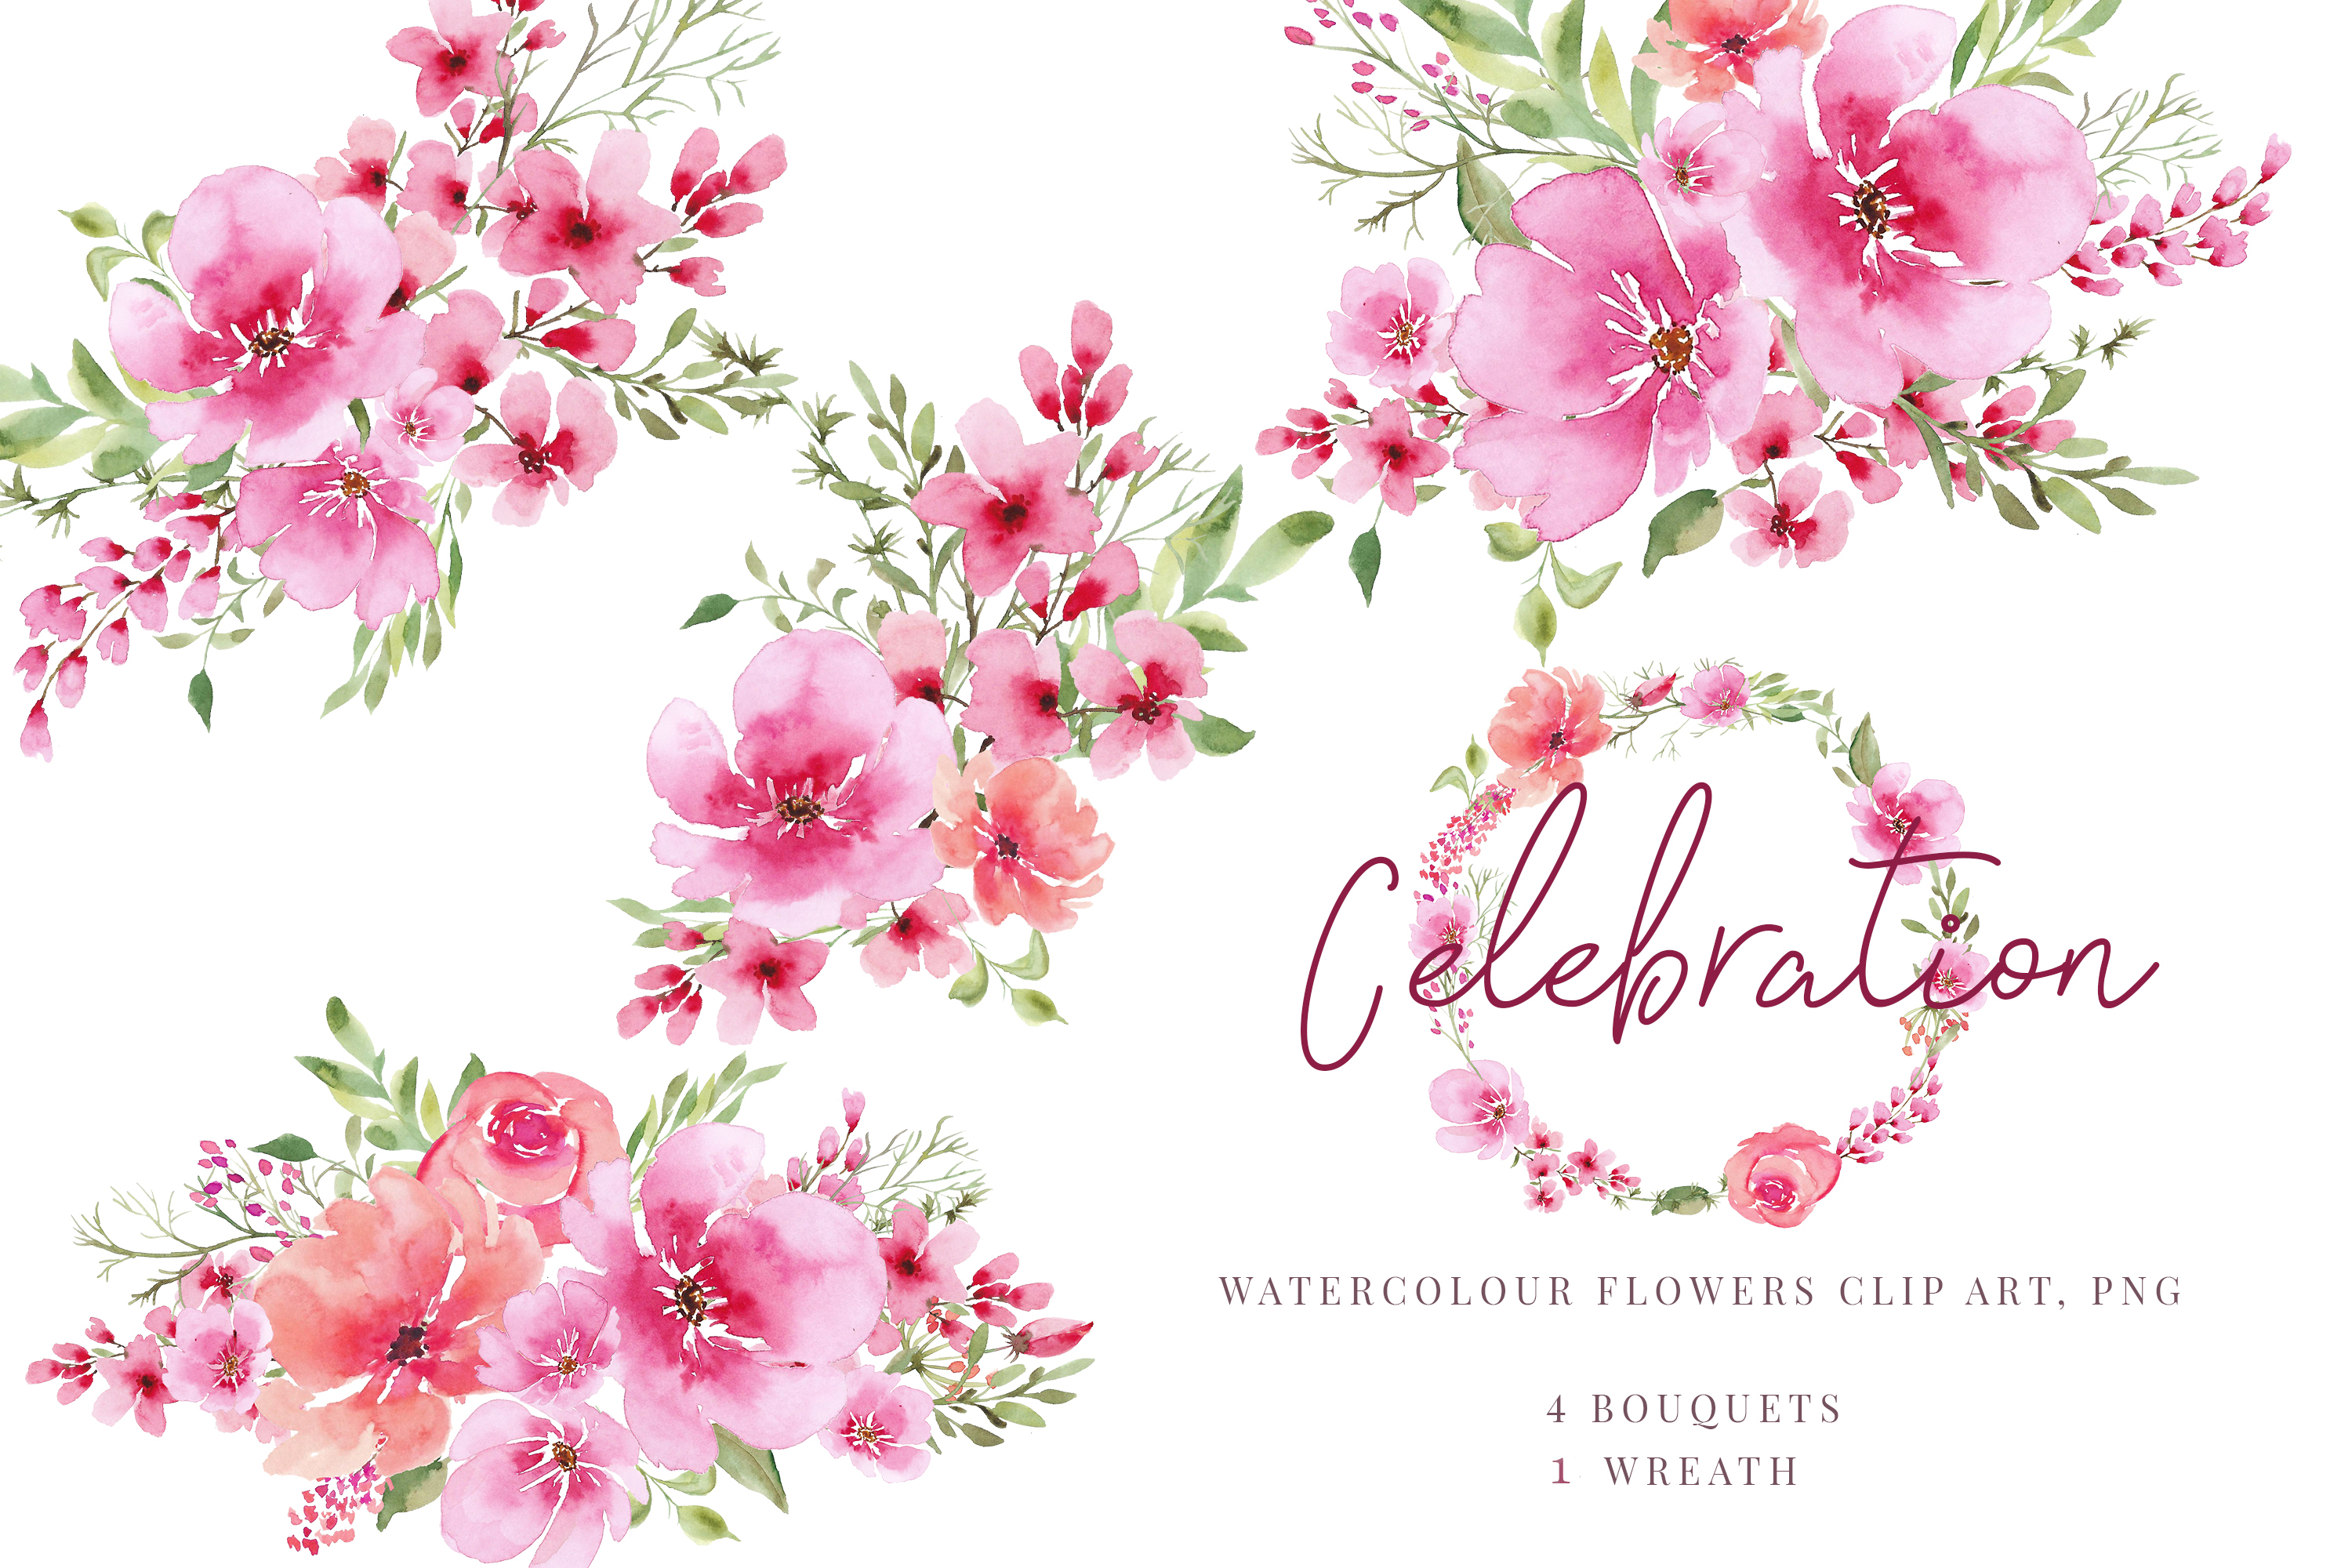 Watercolour clipart to buy graphic freeuse download Watercolour Clipart graphic freeuse download